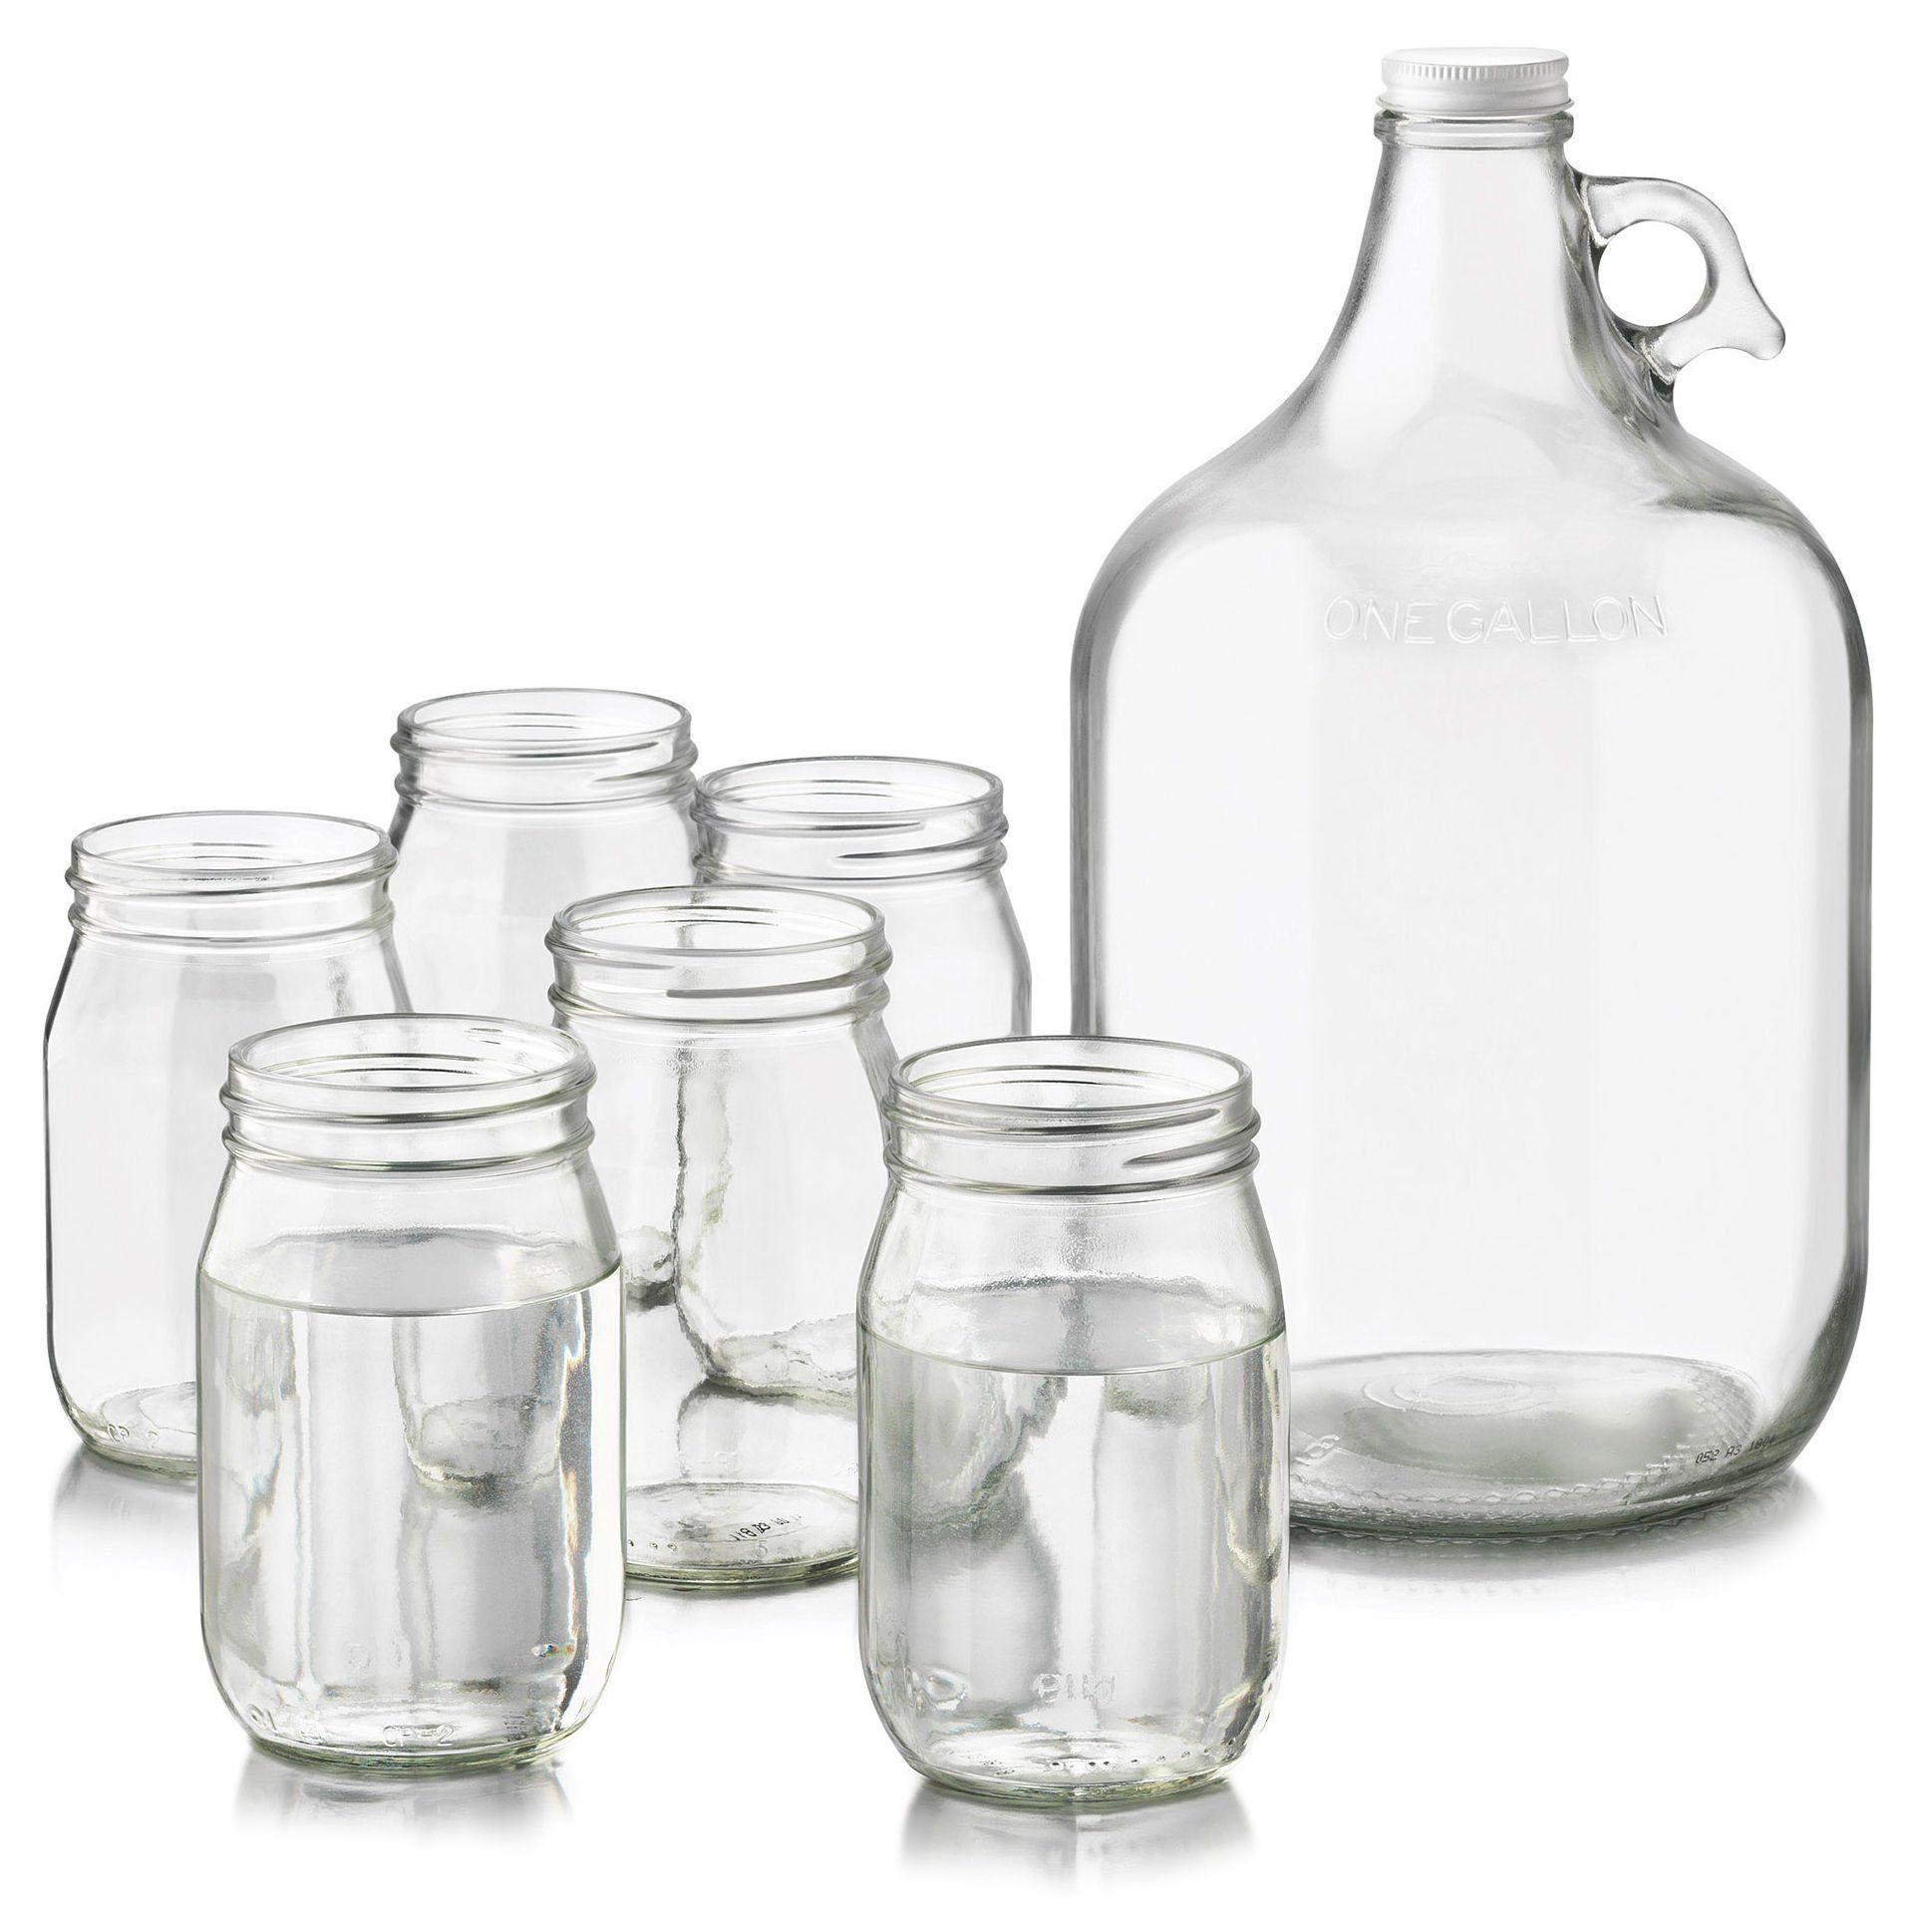 Libbey 8 Piece Country Folk Moonshine Set. Summer ready!